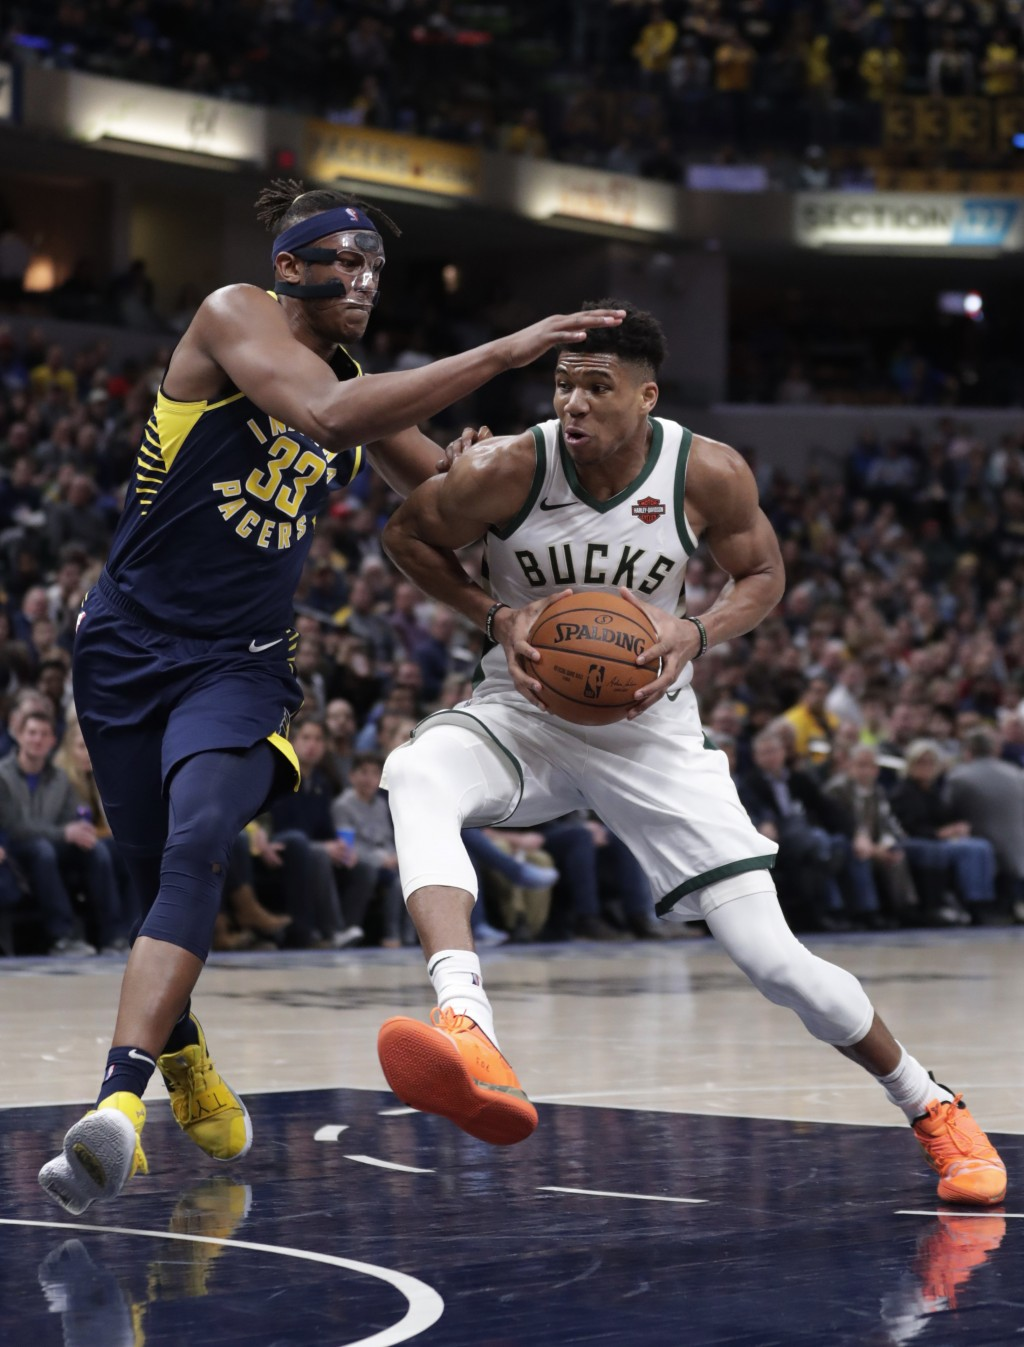 Milwaukee Bucks forward Giannis Antetokounmpo (34) drives on Indiana Pacers center Myles Turner (33) during the second half of an NBA basketball game ...